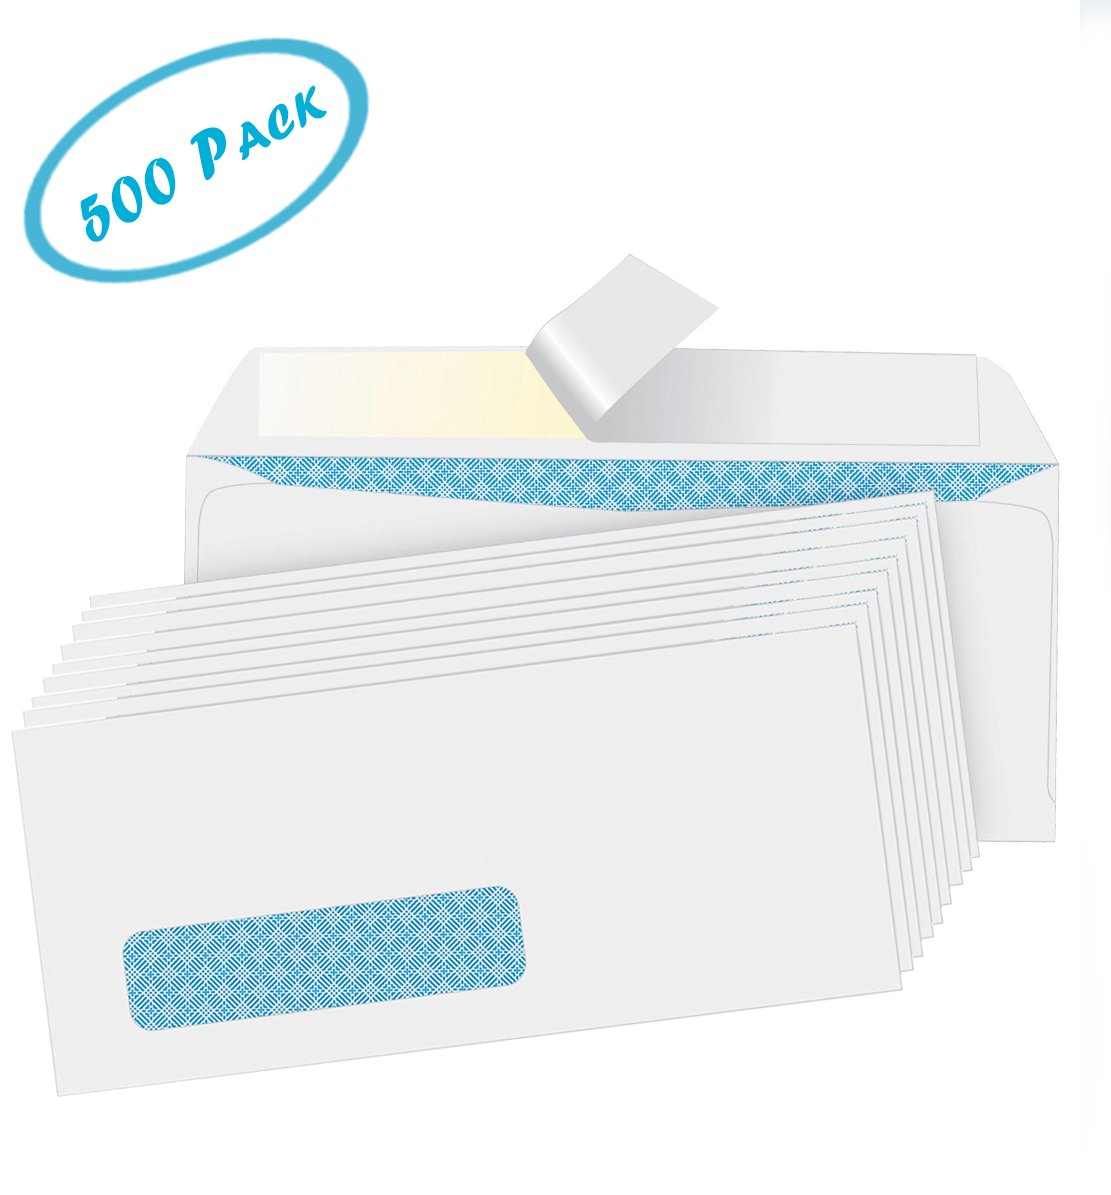 #10 White Envelopes - Security Tint, Self-Seal Envelopes - No Moisture Required - Left Window - Ideal for Home, Office - Quick-Seal Closure - 4-1/8 x 9-1/2 Inches – 500-Pack